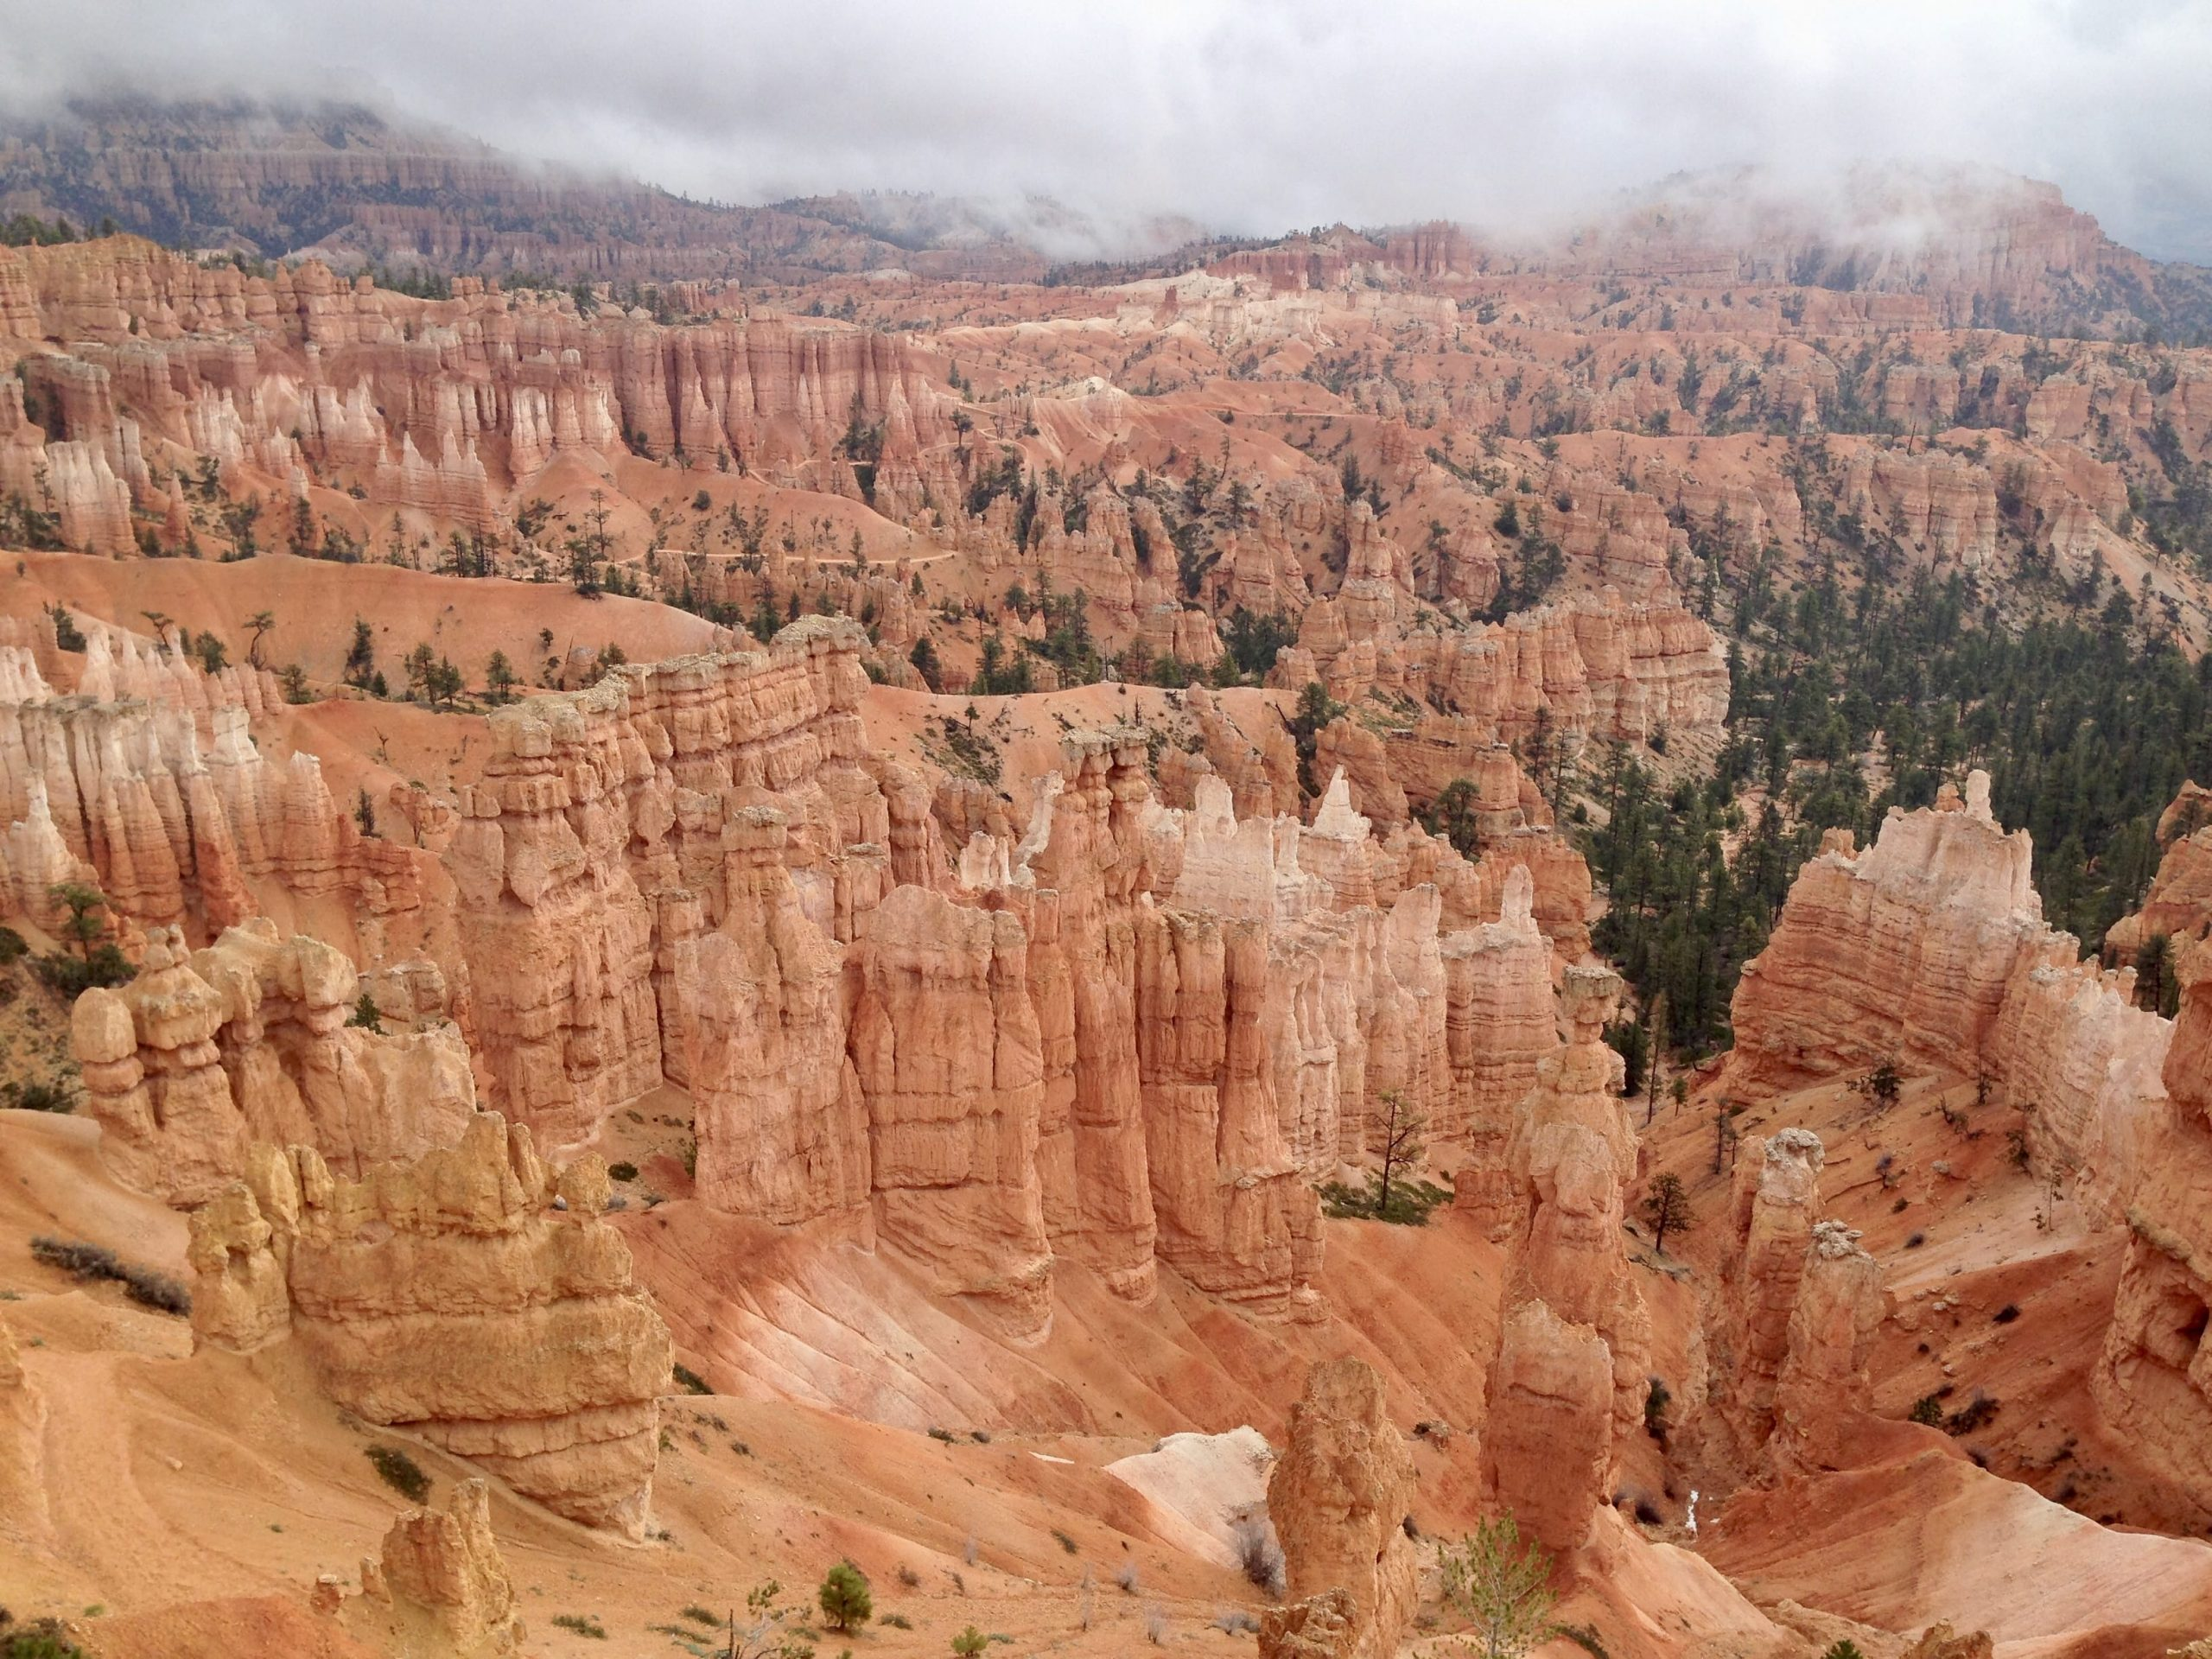 View from Figure 8 Trail in Bryce Canyon National Park